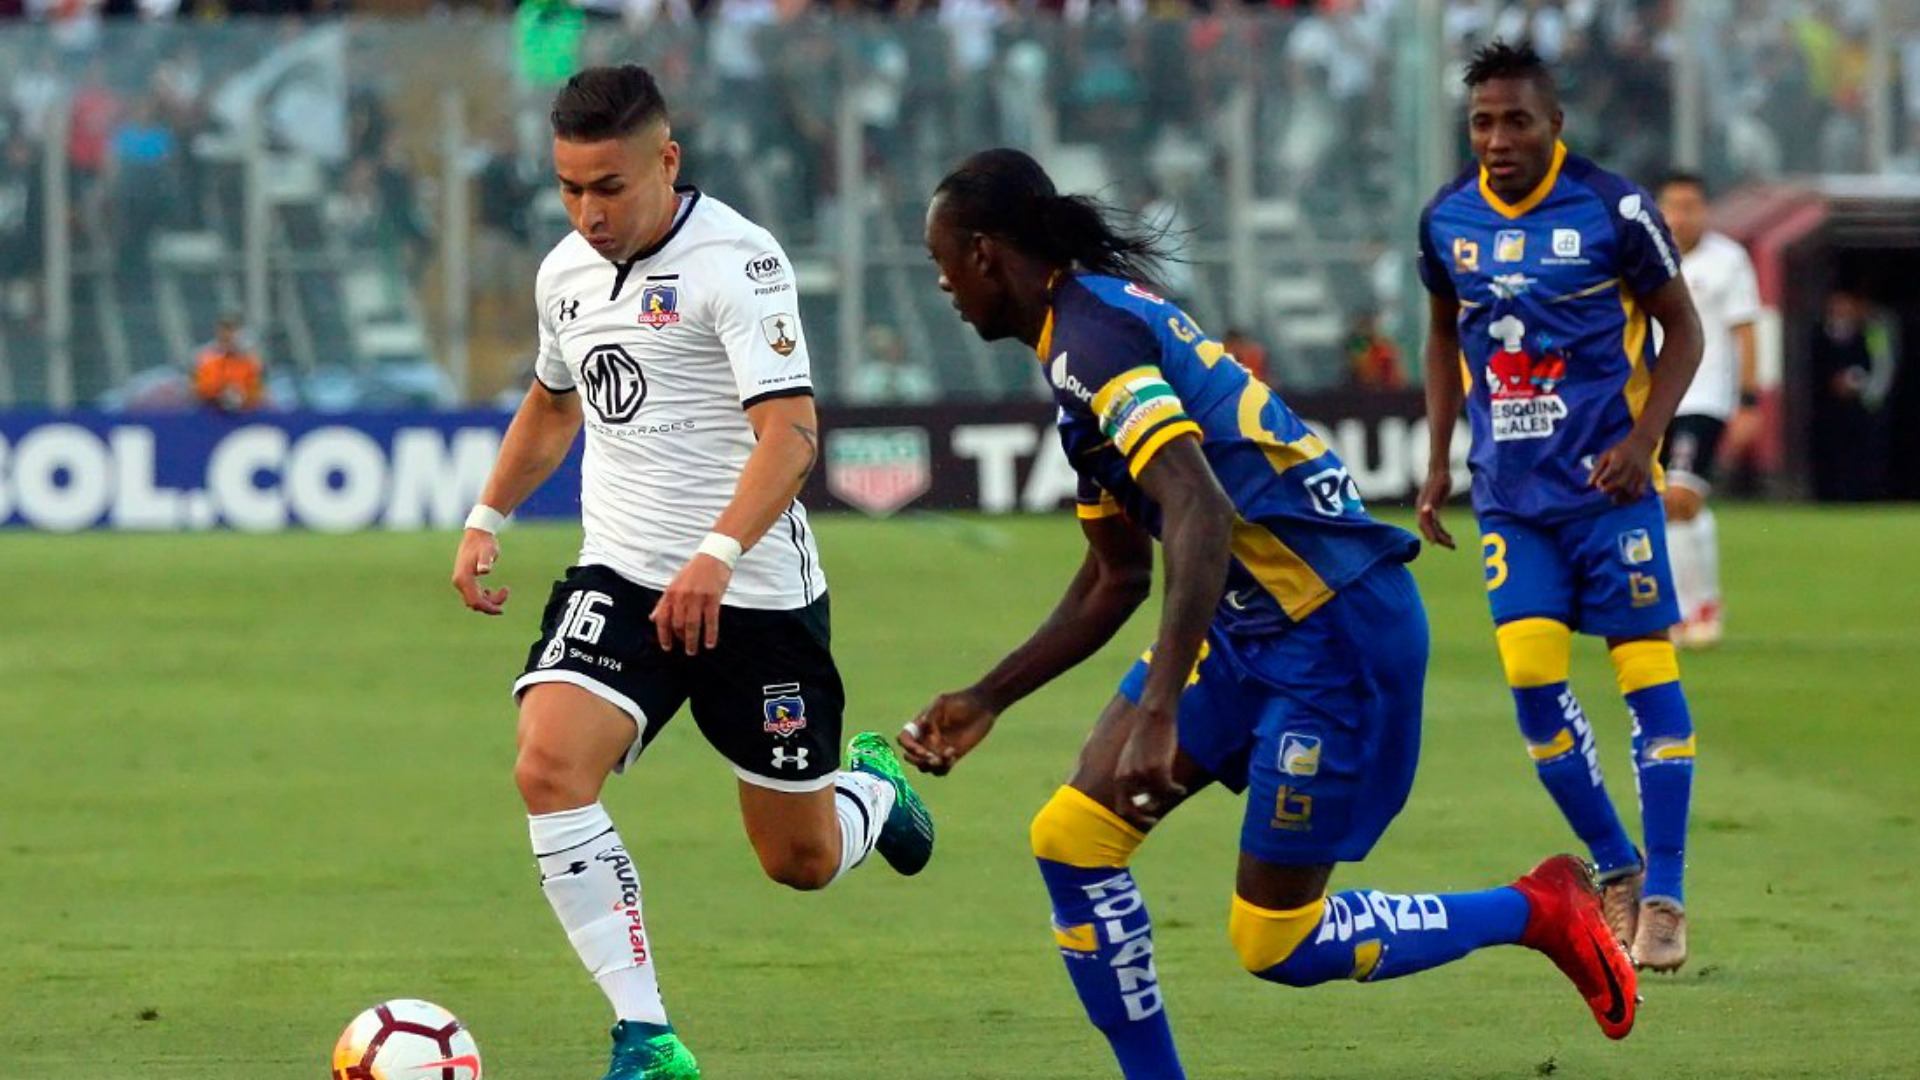 Cómo ver Iquique vs. Colo Colo en vivo y online: streaming y TV ...